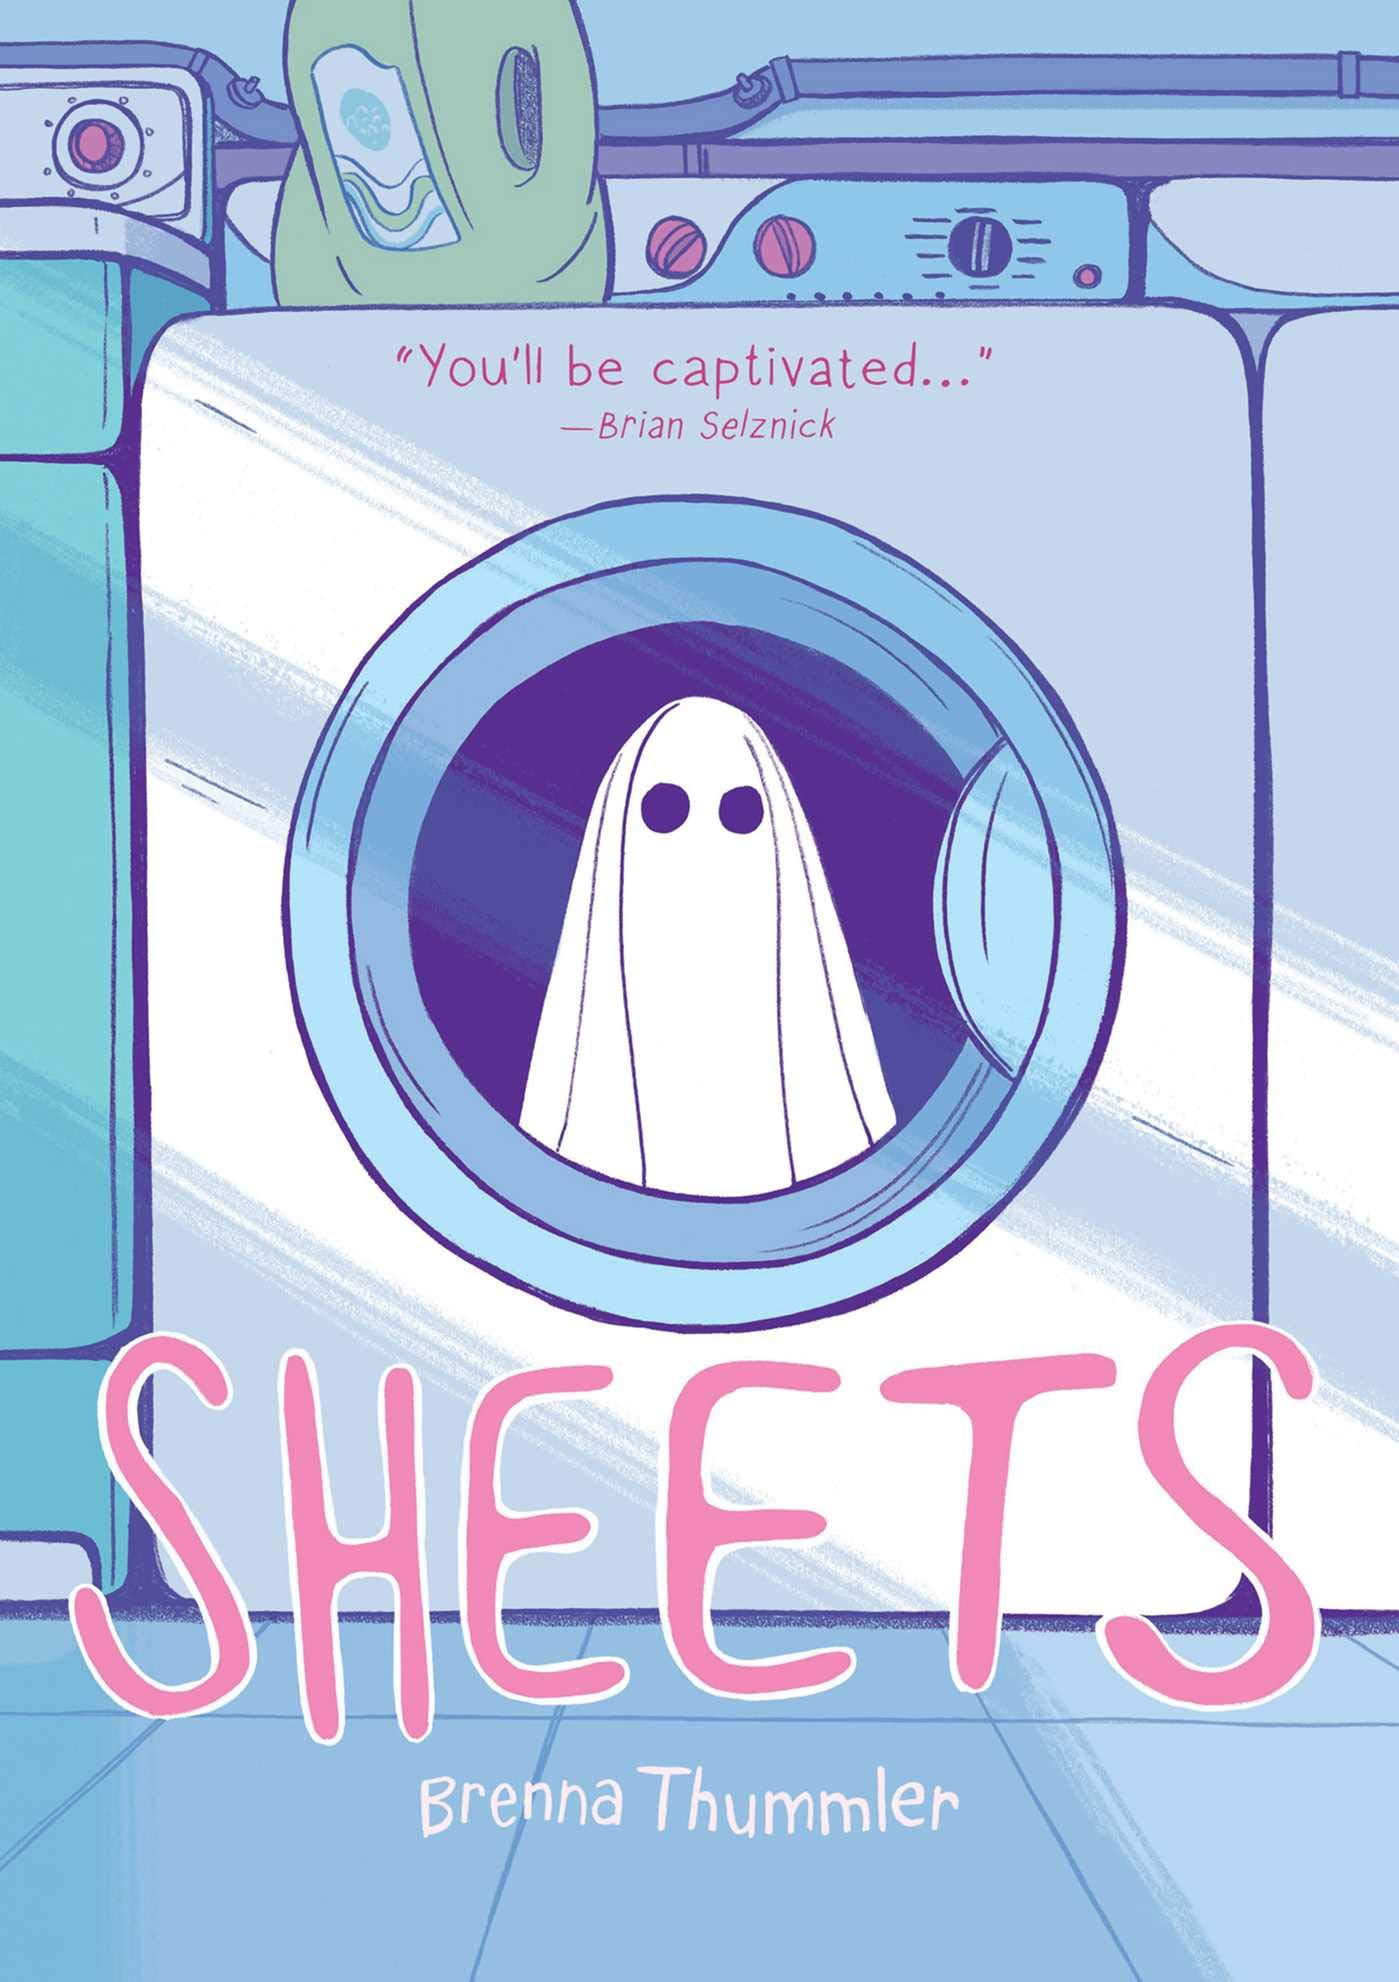 Sheets book cover